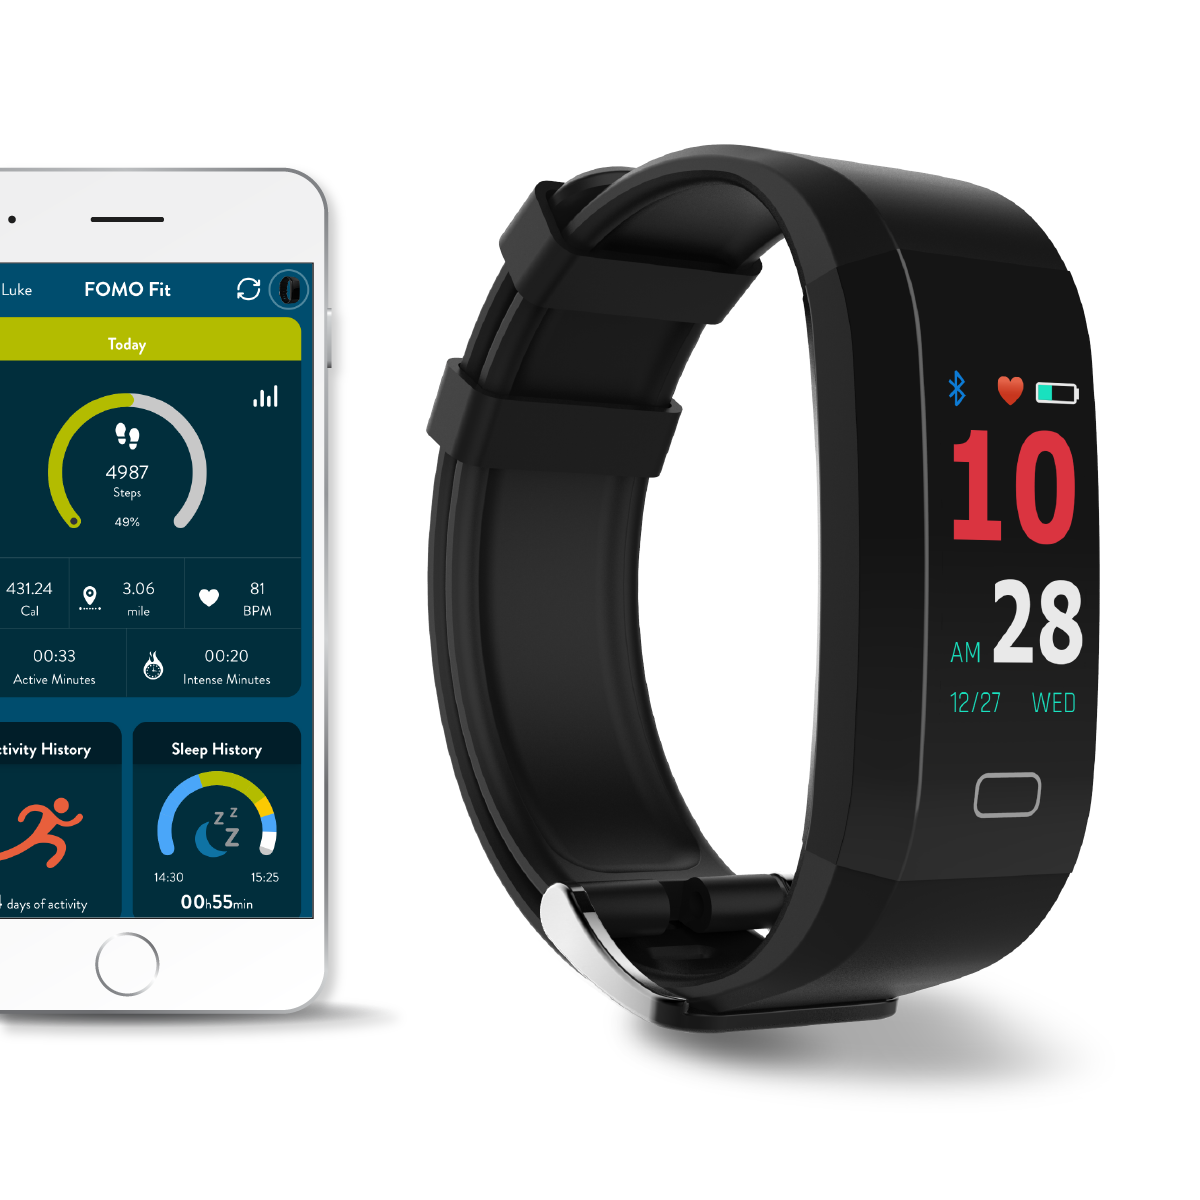 FOMO Fit GPS fitness tracker watch designed in California ...